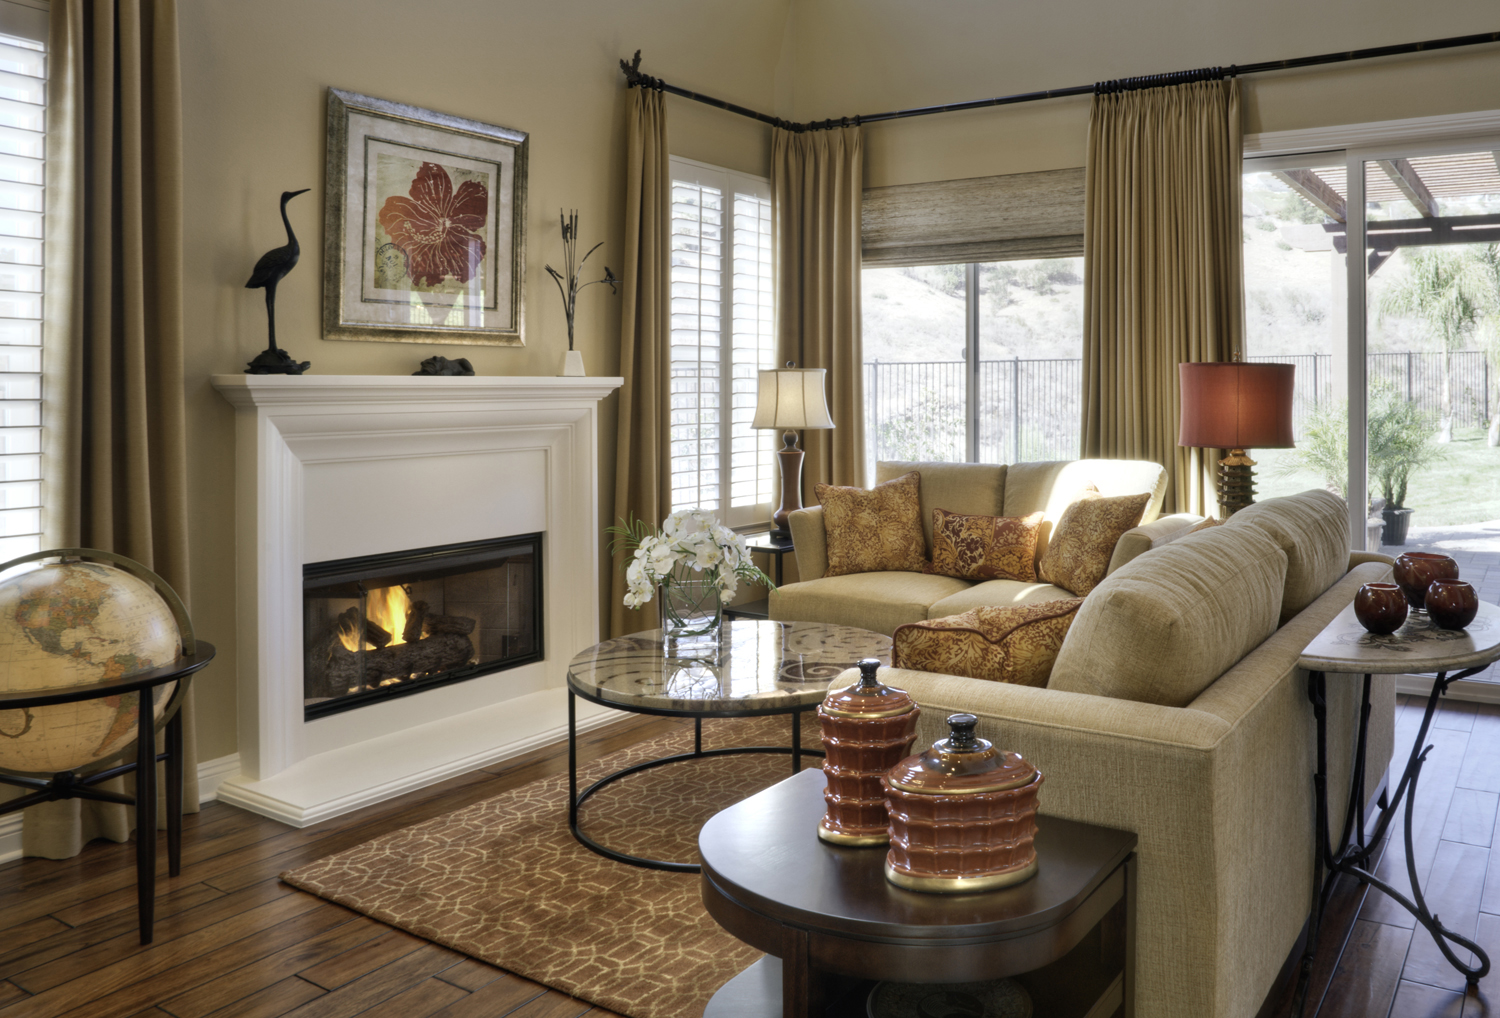 Seven Color Trends for Homes This 2017 - Daily News Online